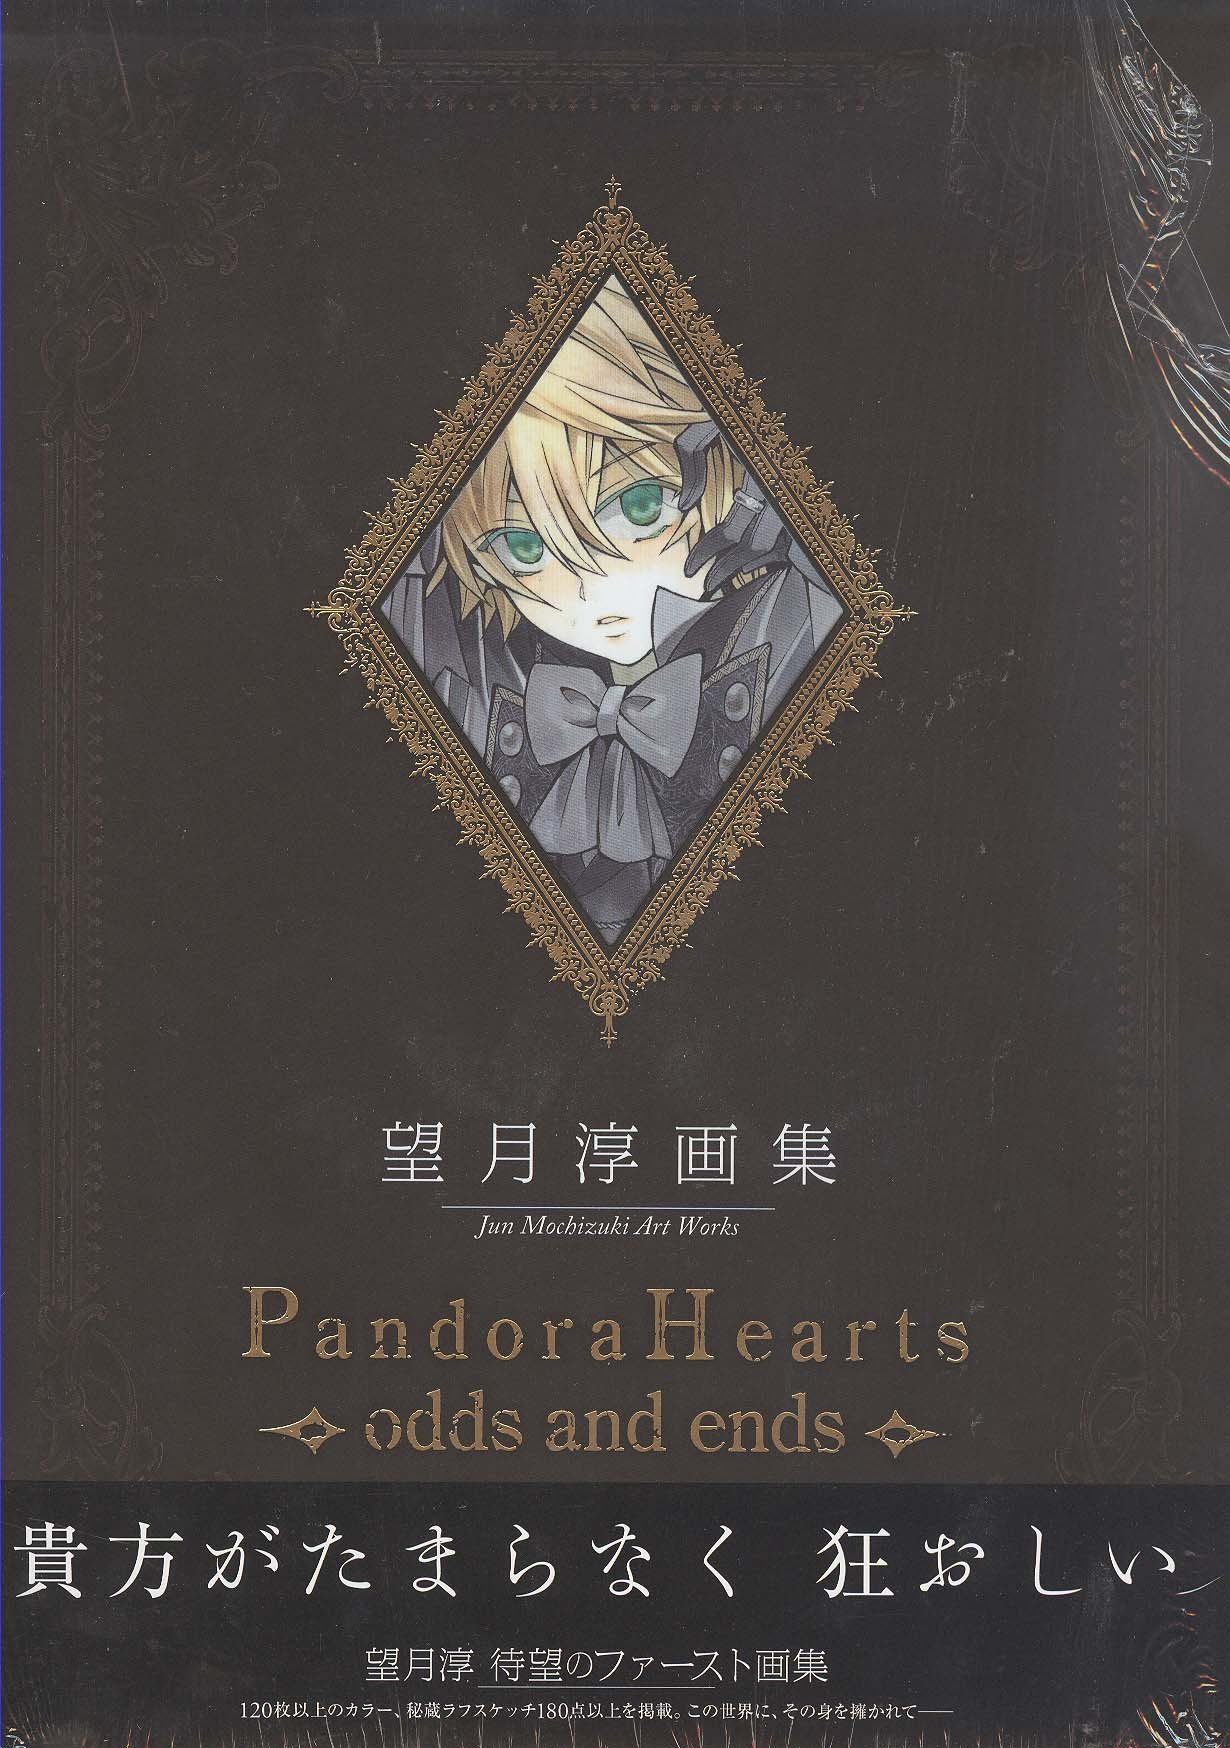 Read Online Pandora Hearts Art Book Odds And Ends Jun Mochizuki Art Works (In Japanese) ebook